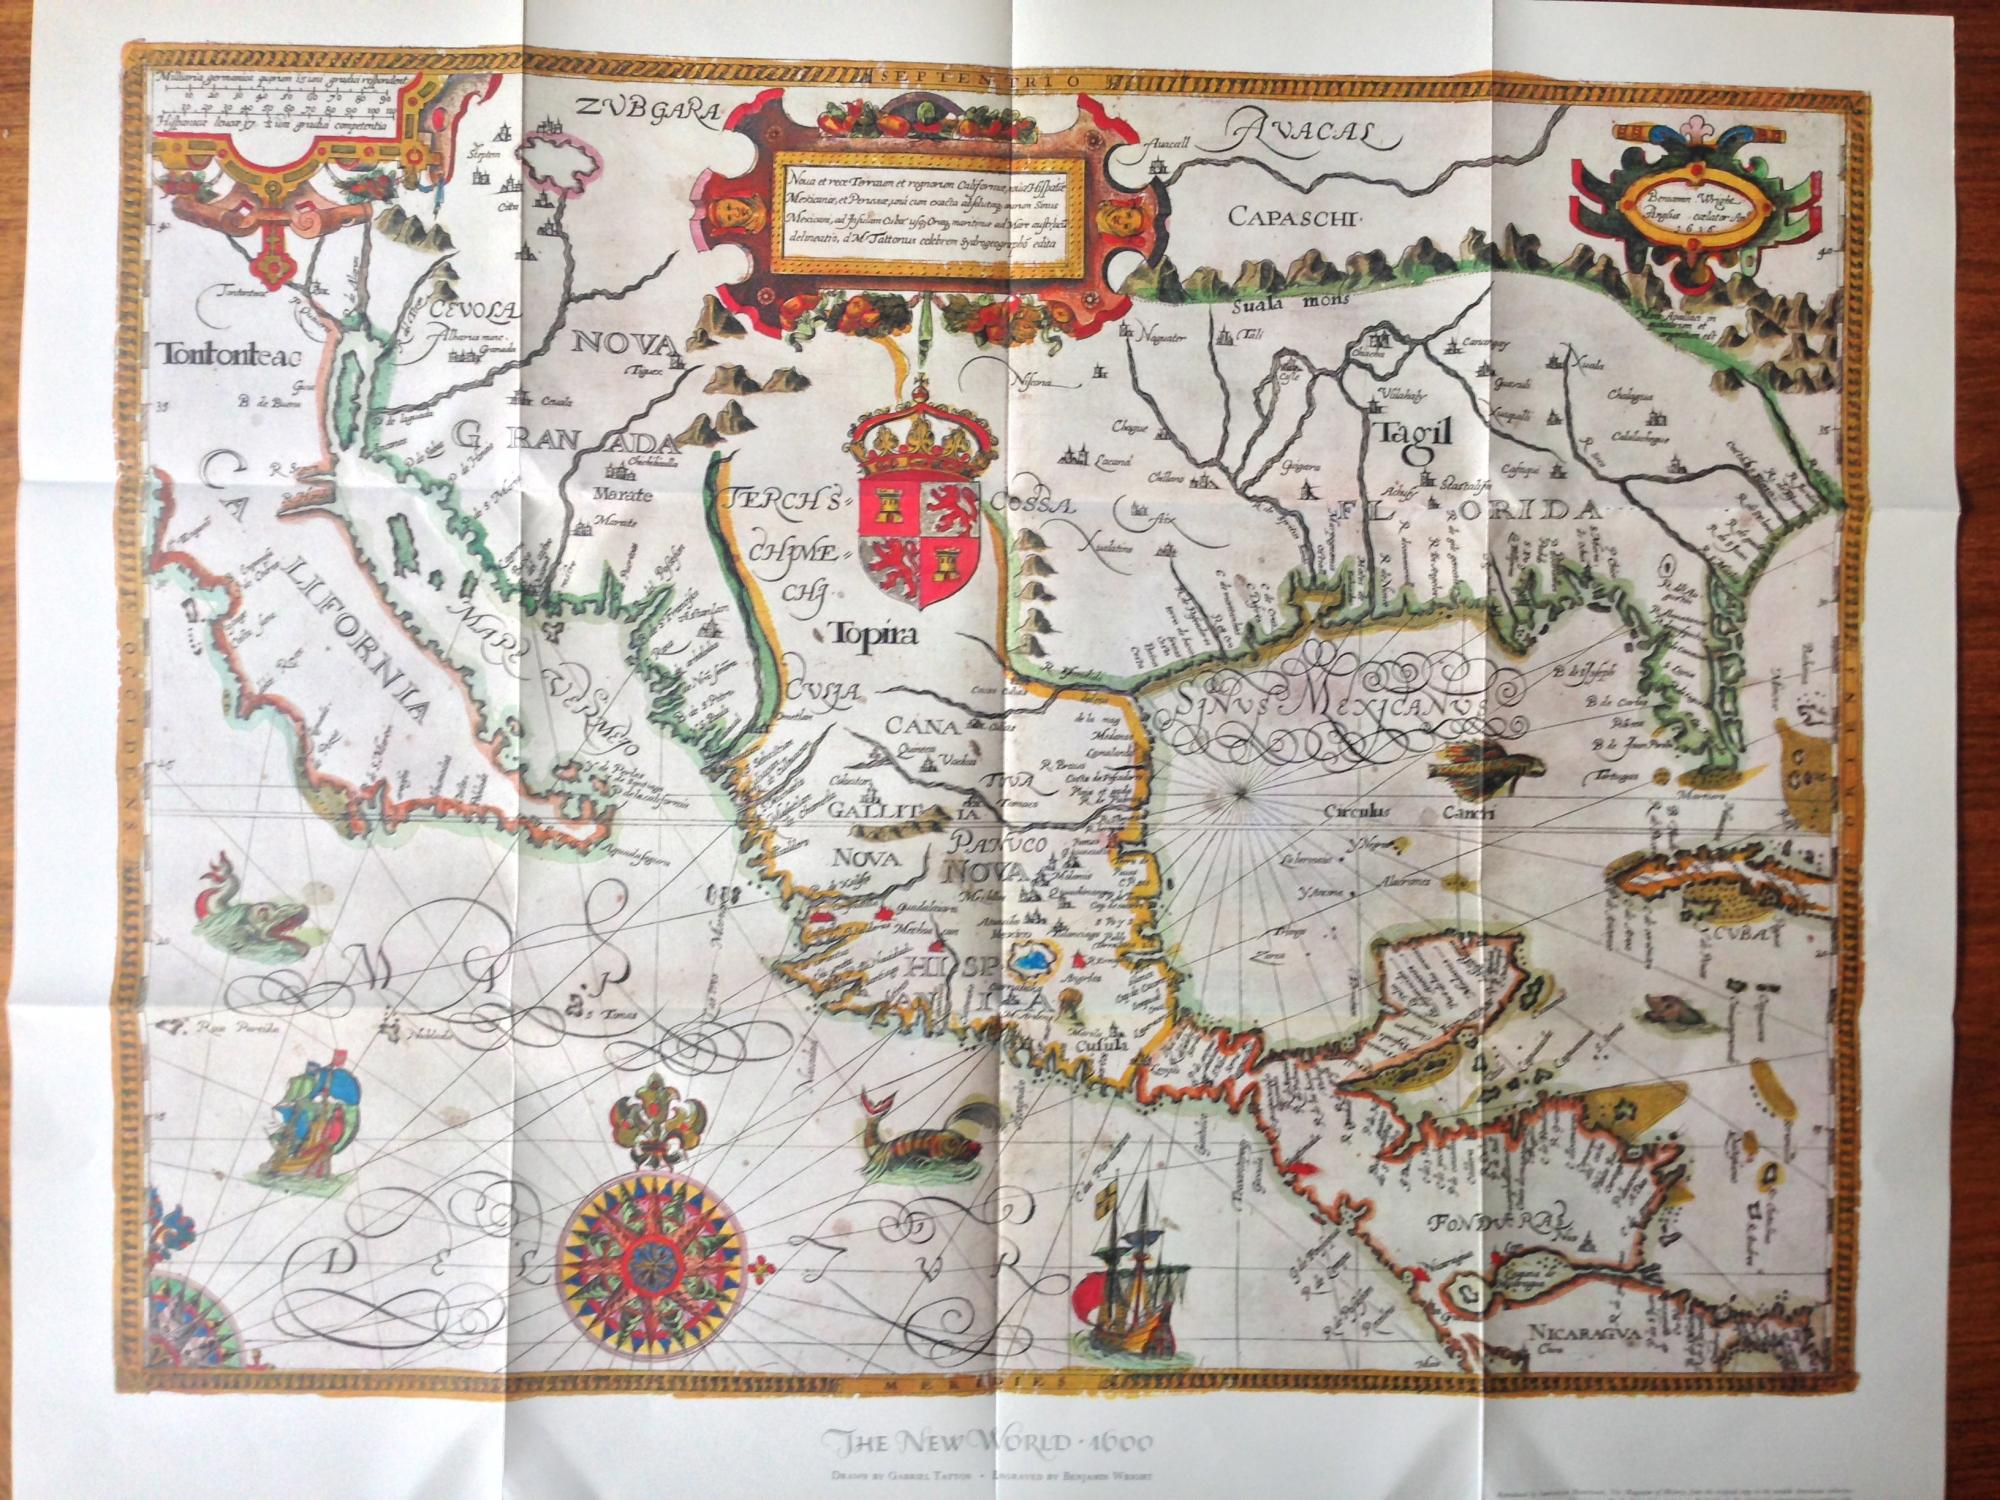 Map Reproduction] The New World - 1600 / Drawn by Gabriel Tatton ...